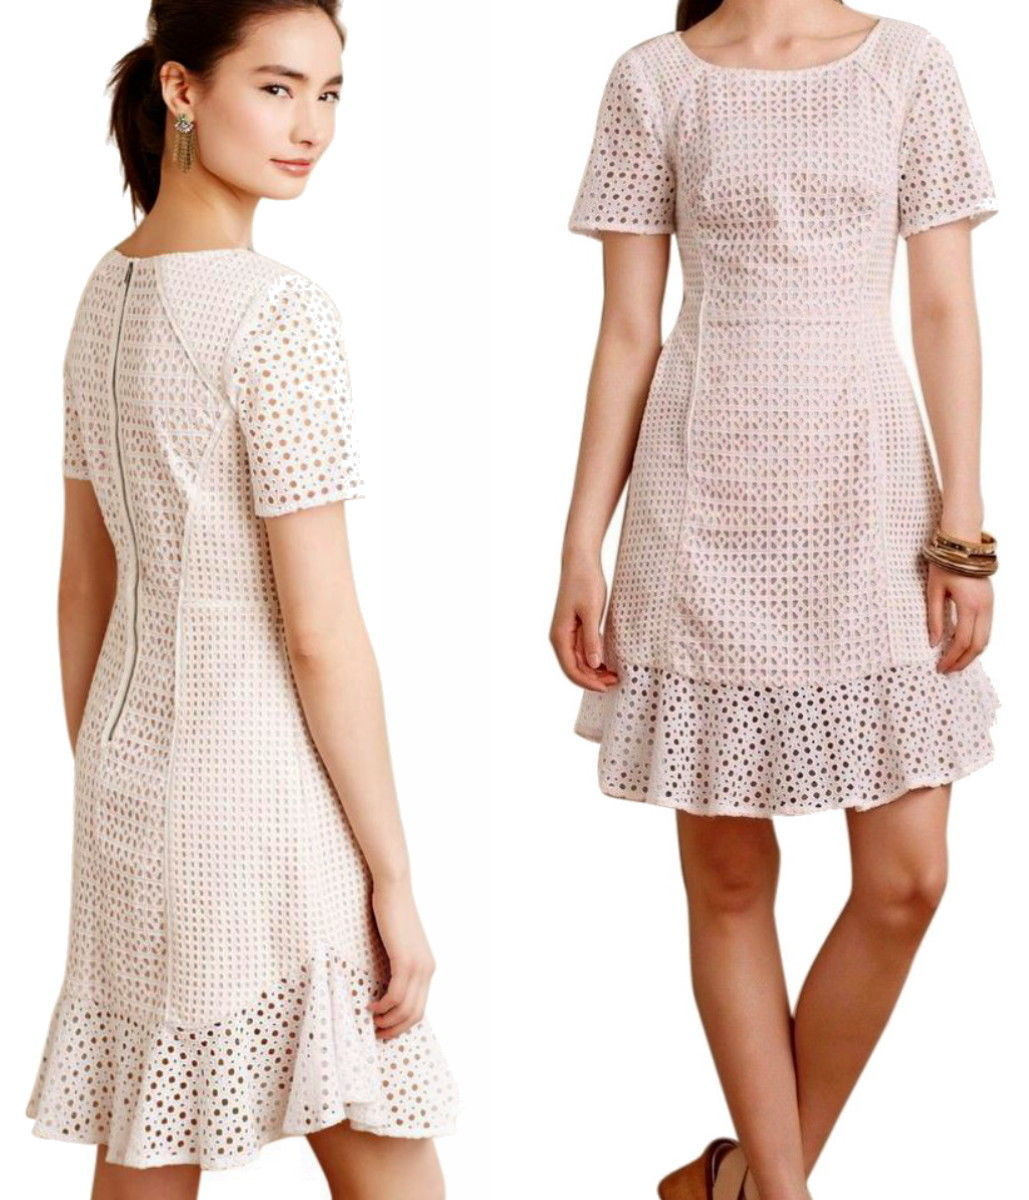 fcdb84a59479 $188 Anthropologie French Lattice Dress 10 Large White w Nude Lining Simple  Sexy - $89.00